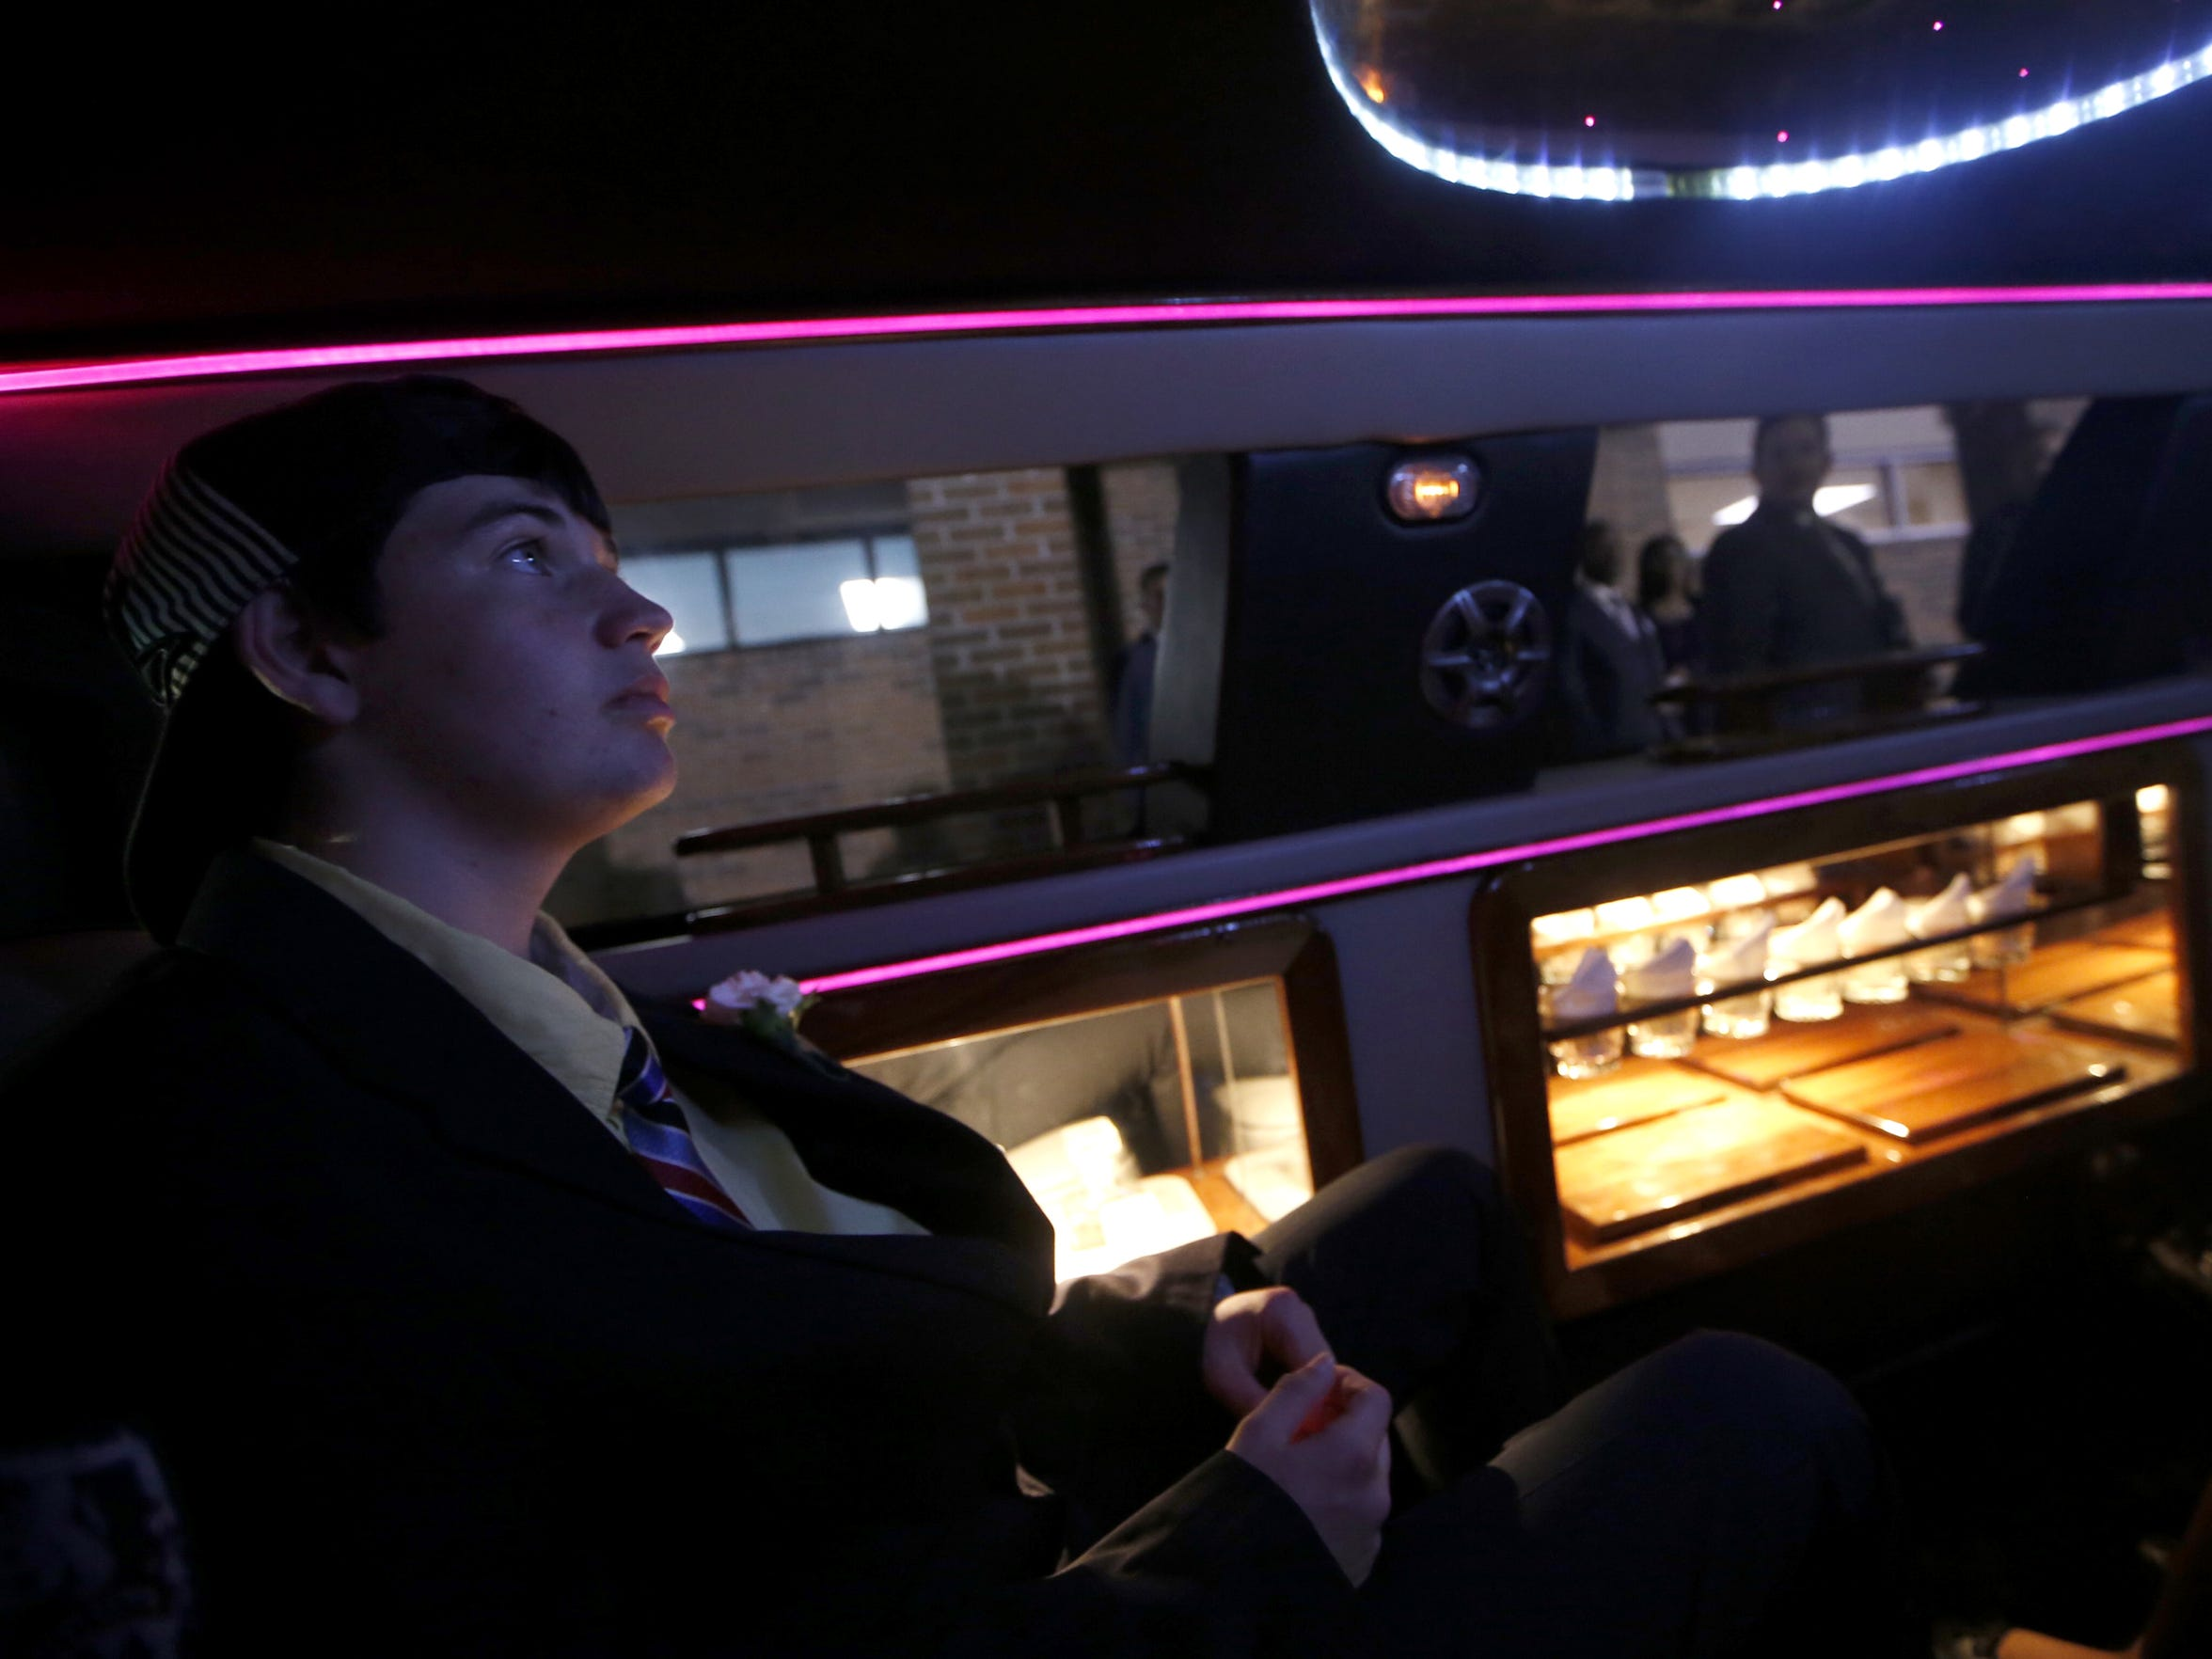 Charlie Harrison, 17, looks into the lights of the limo as it takes guests for a joyride during the Night to Shine special needs prom at Genesis Church on Friday, Feb. 12, 2016.